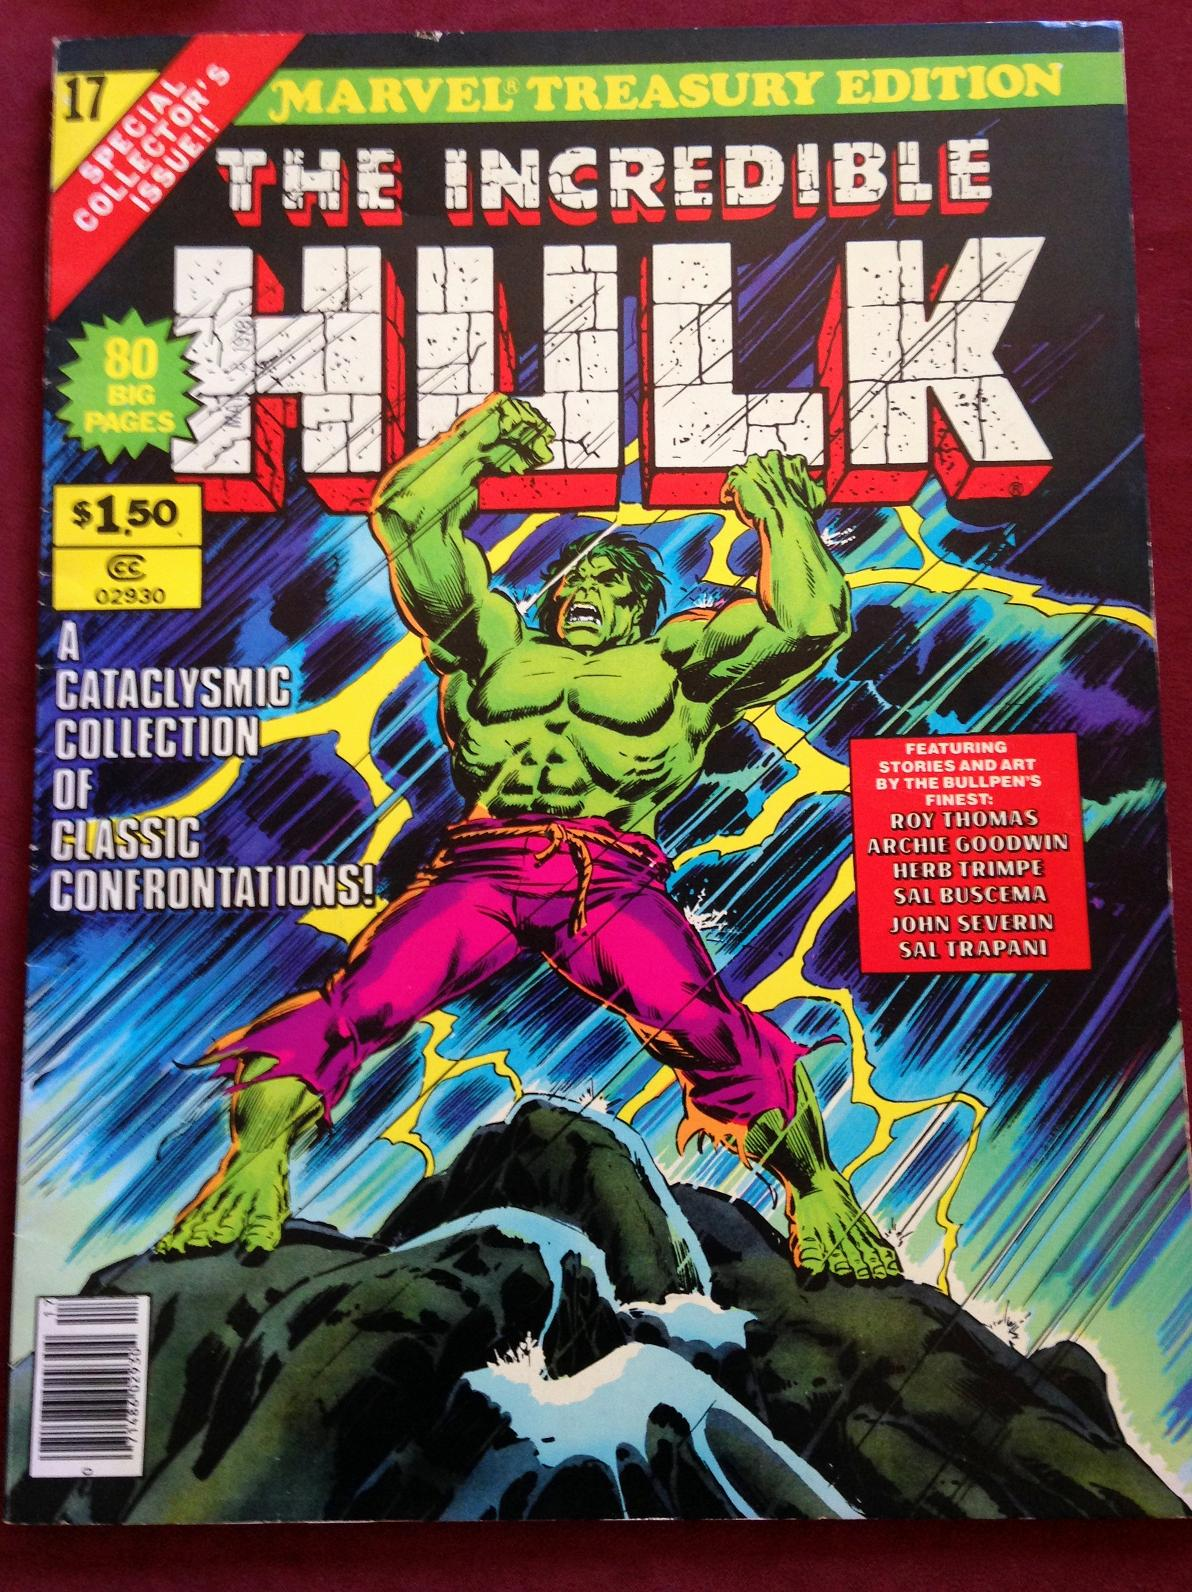 marvel treasury 17 incredible hulk (2)